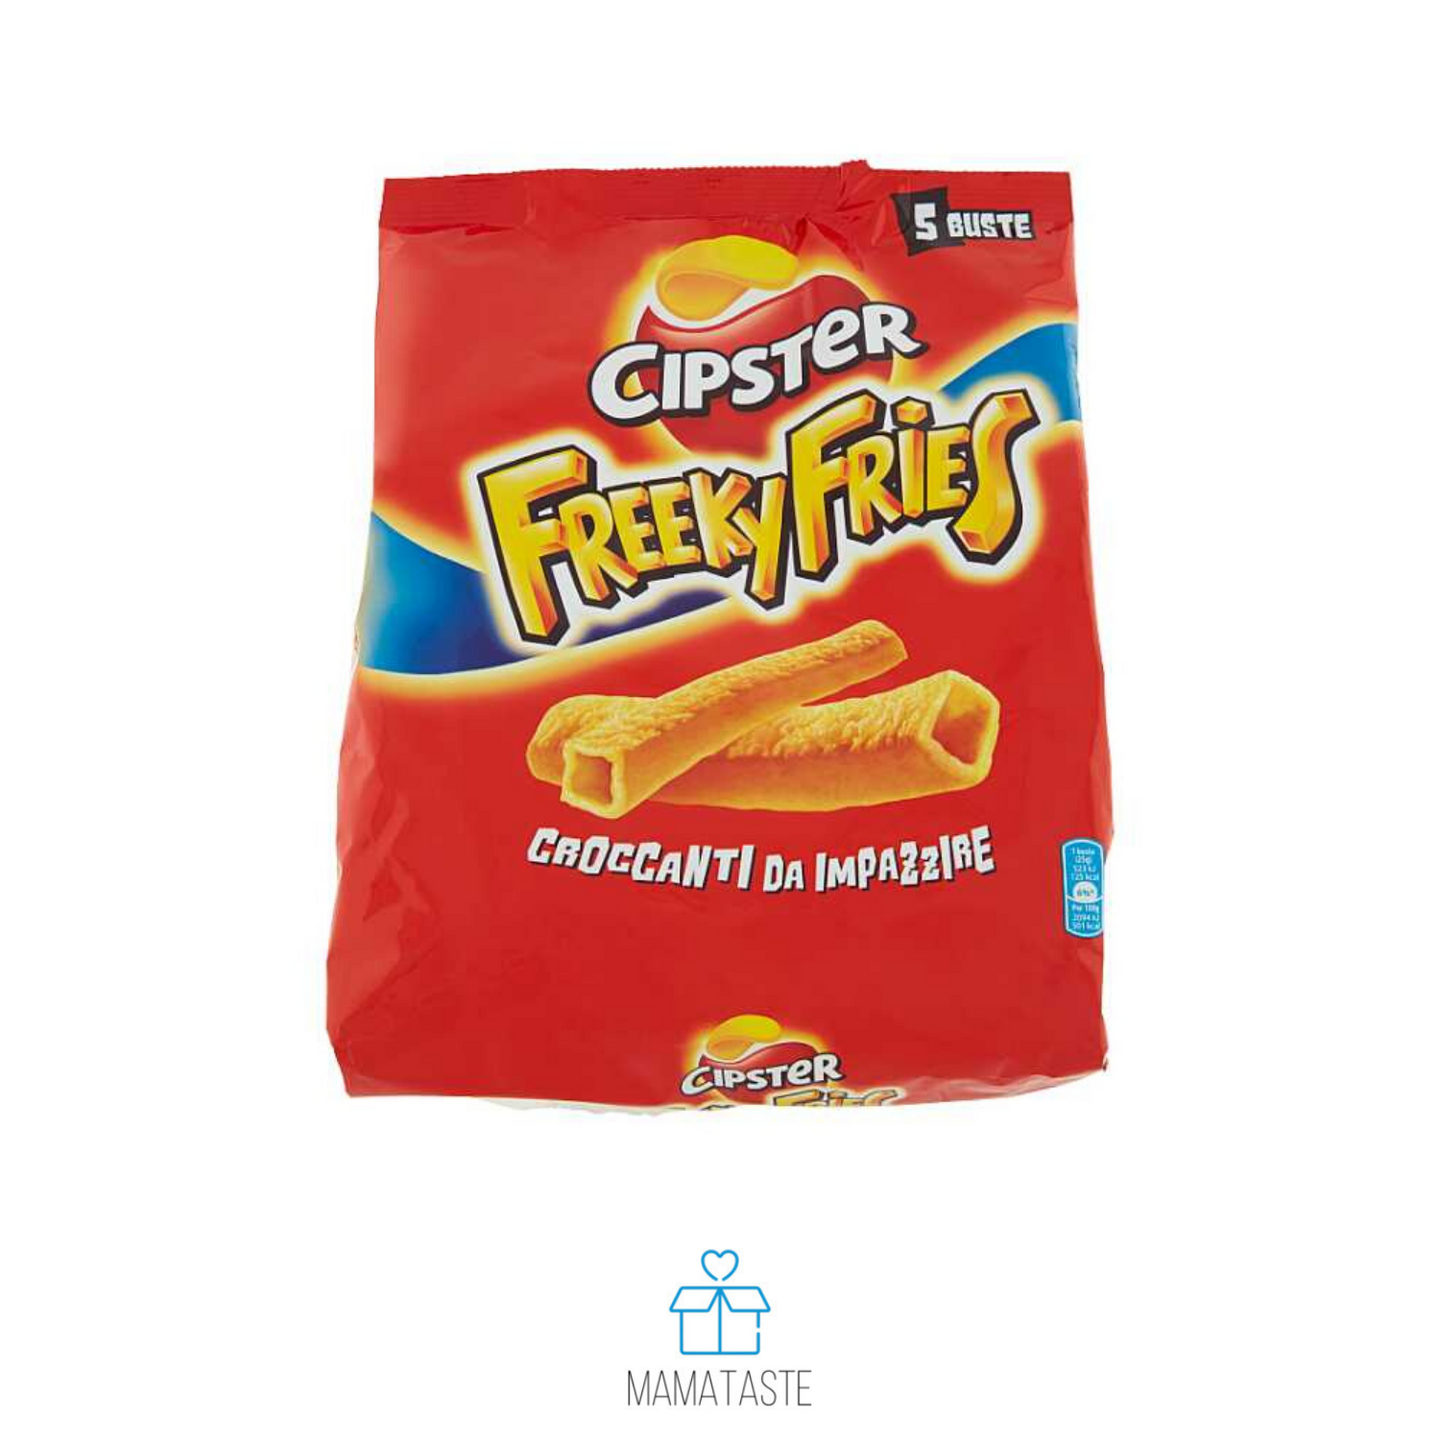 CIPSTER FREEKY FRIES - 5 X 25 GR